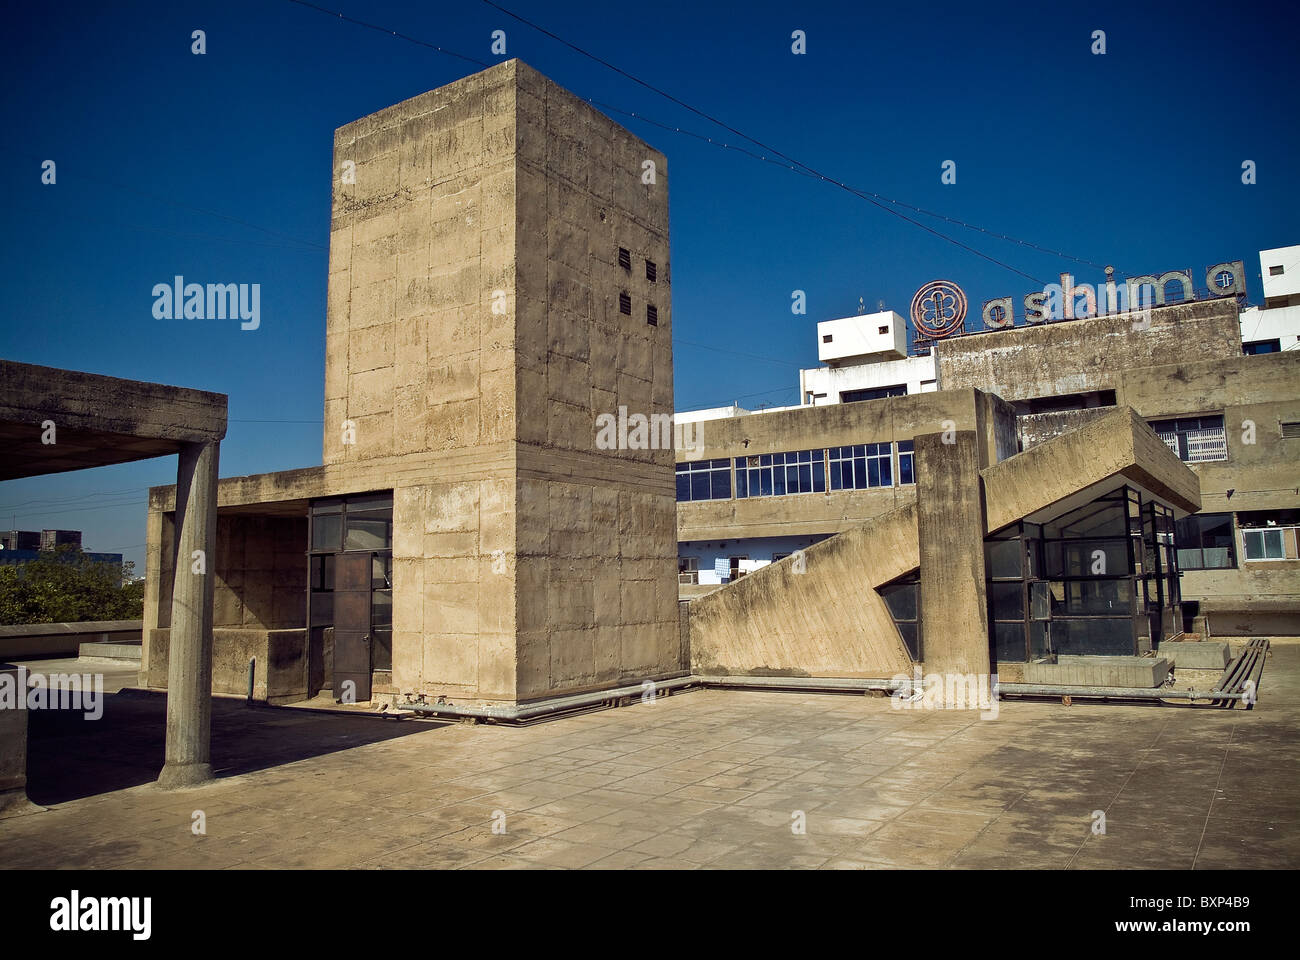 The Millowners Association Building designed by Architect Le Corbusier in Ahmedabad, Gujarat, India - Stock Image